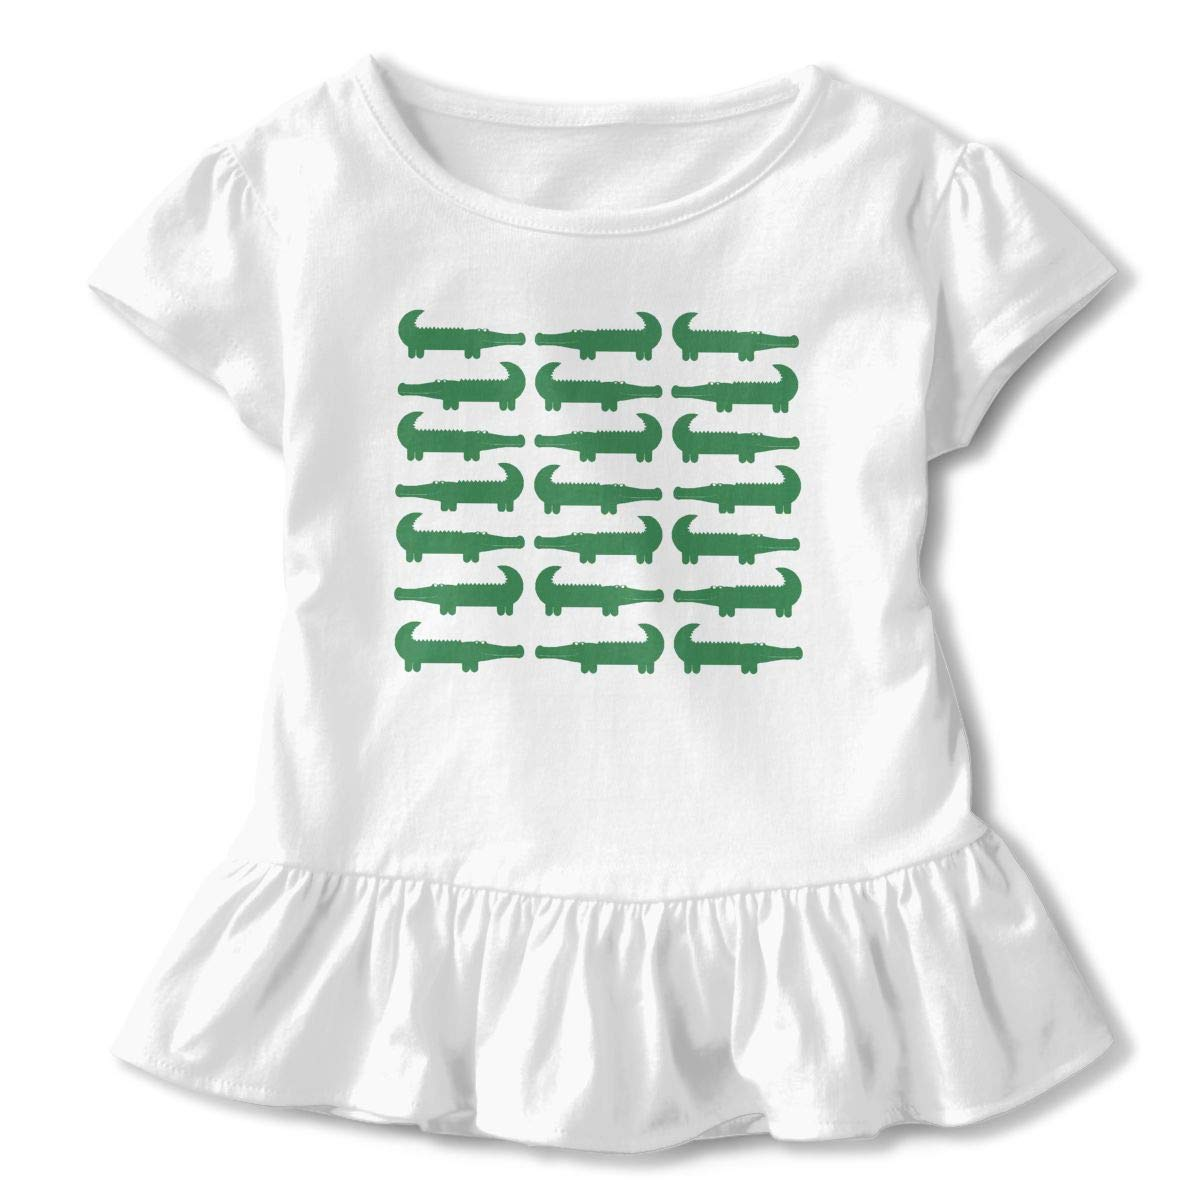 Cartoon Green Alligator Toddler Girls Round Neck Ruffle Short Sleeves Top Tunic for Home School As Gift for Children